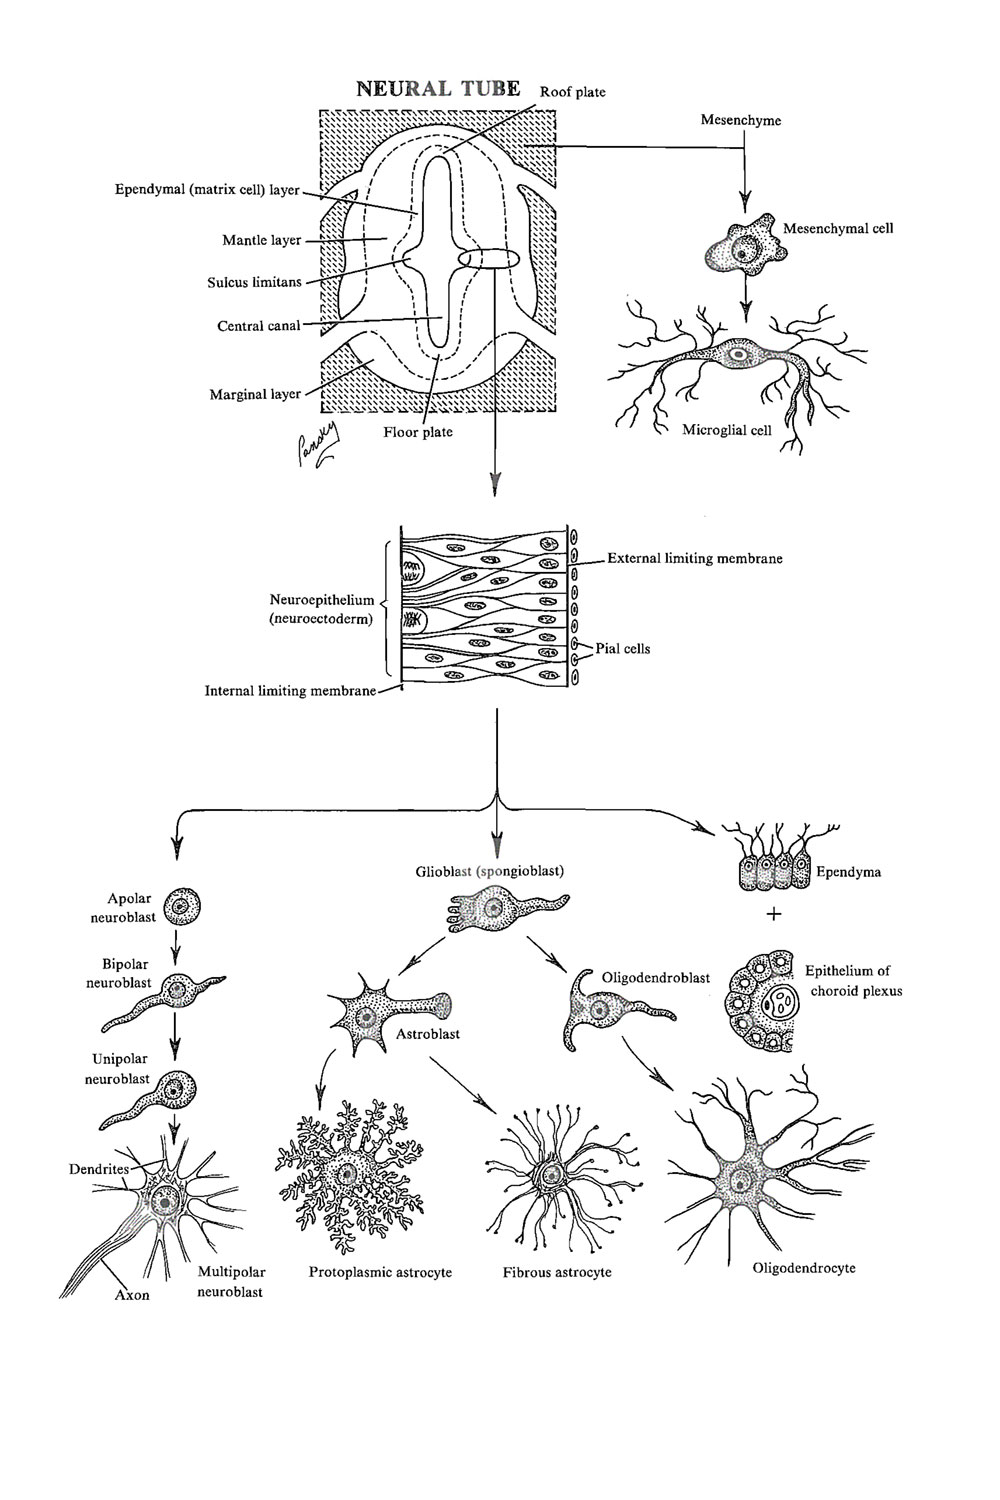 the spinal cord: differentiation of nerve and glial cells: image #1